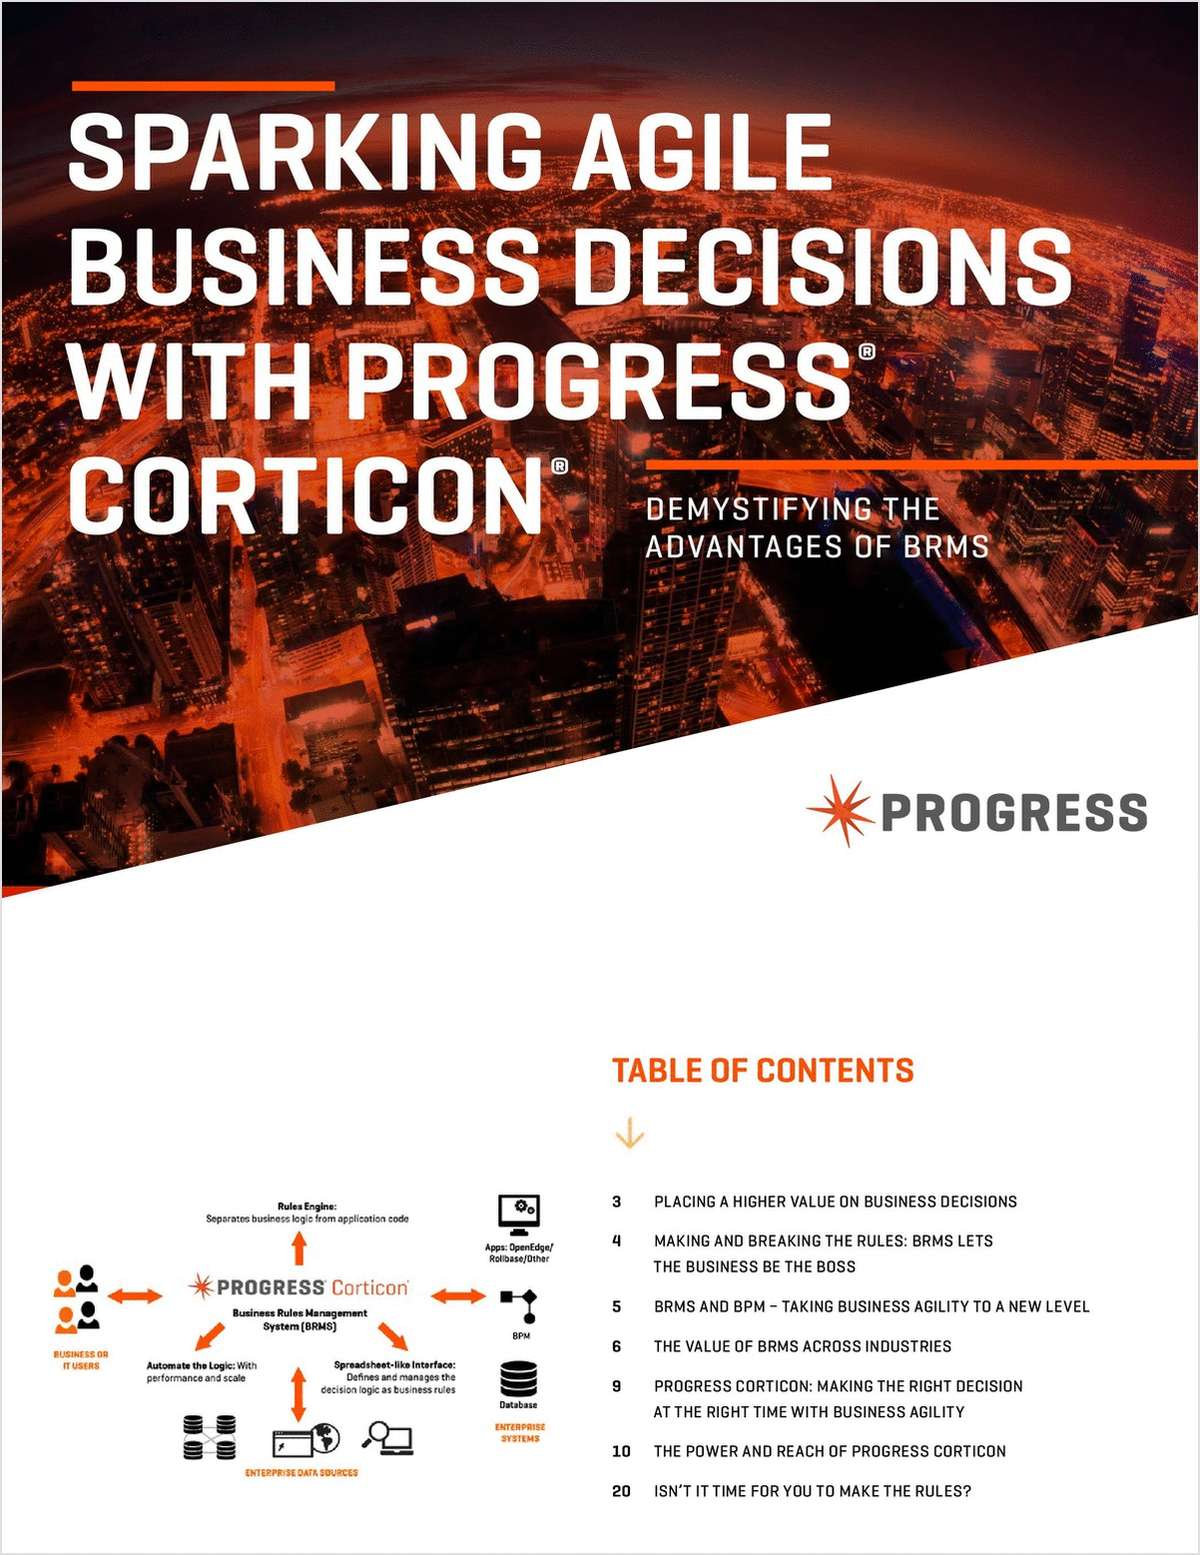 Sparking Agile Business Decisions: Demystifying the Advantages of Business Rules